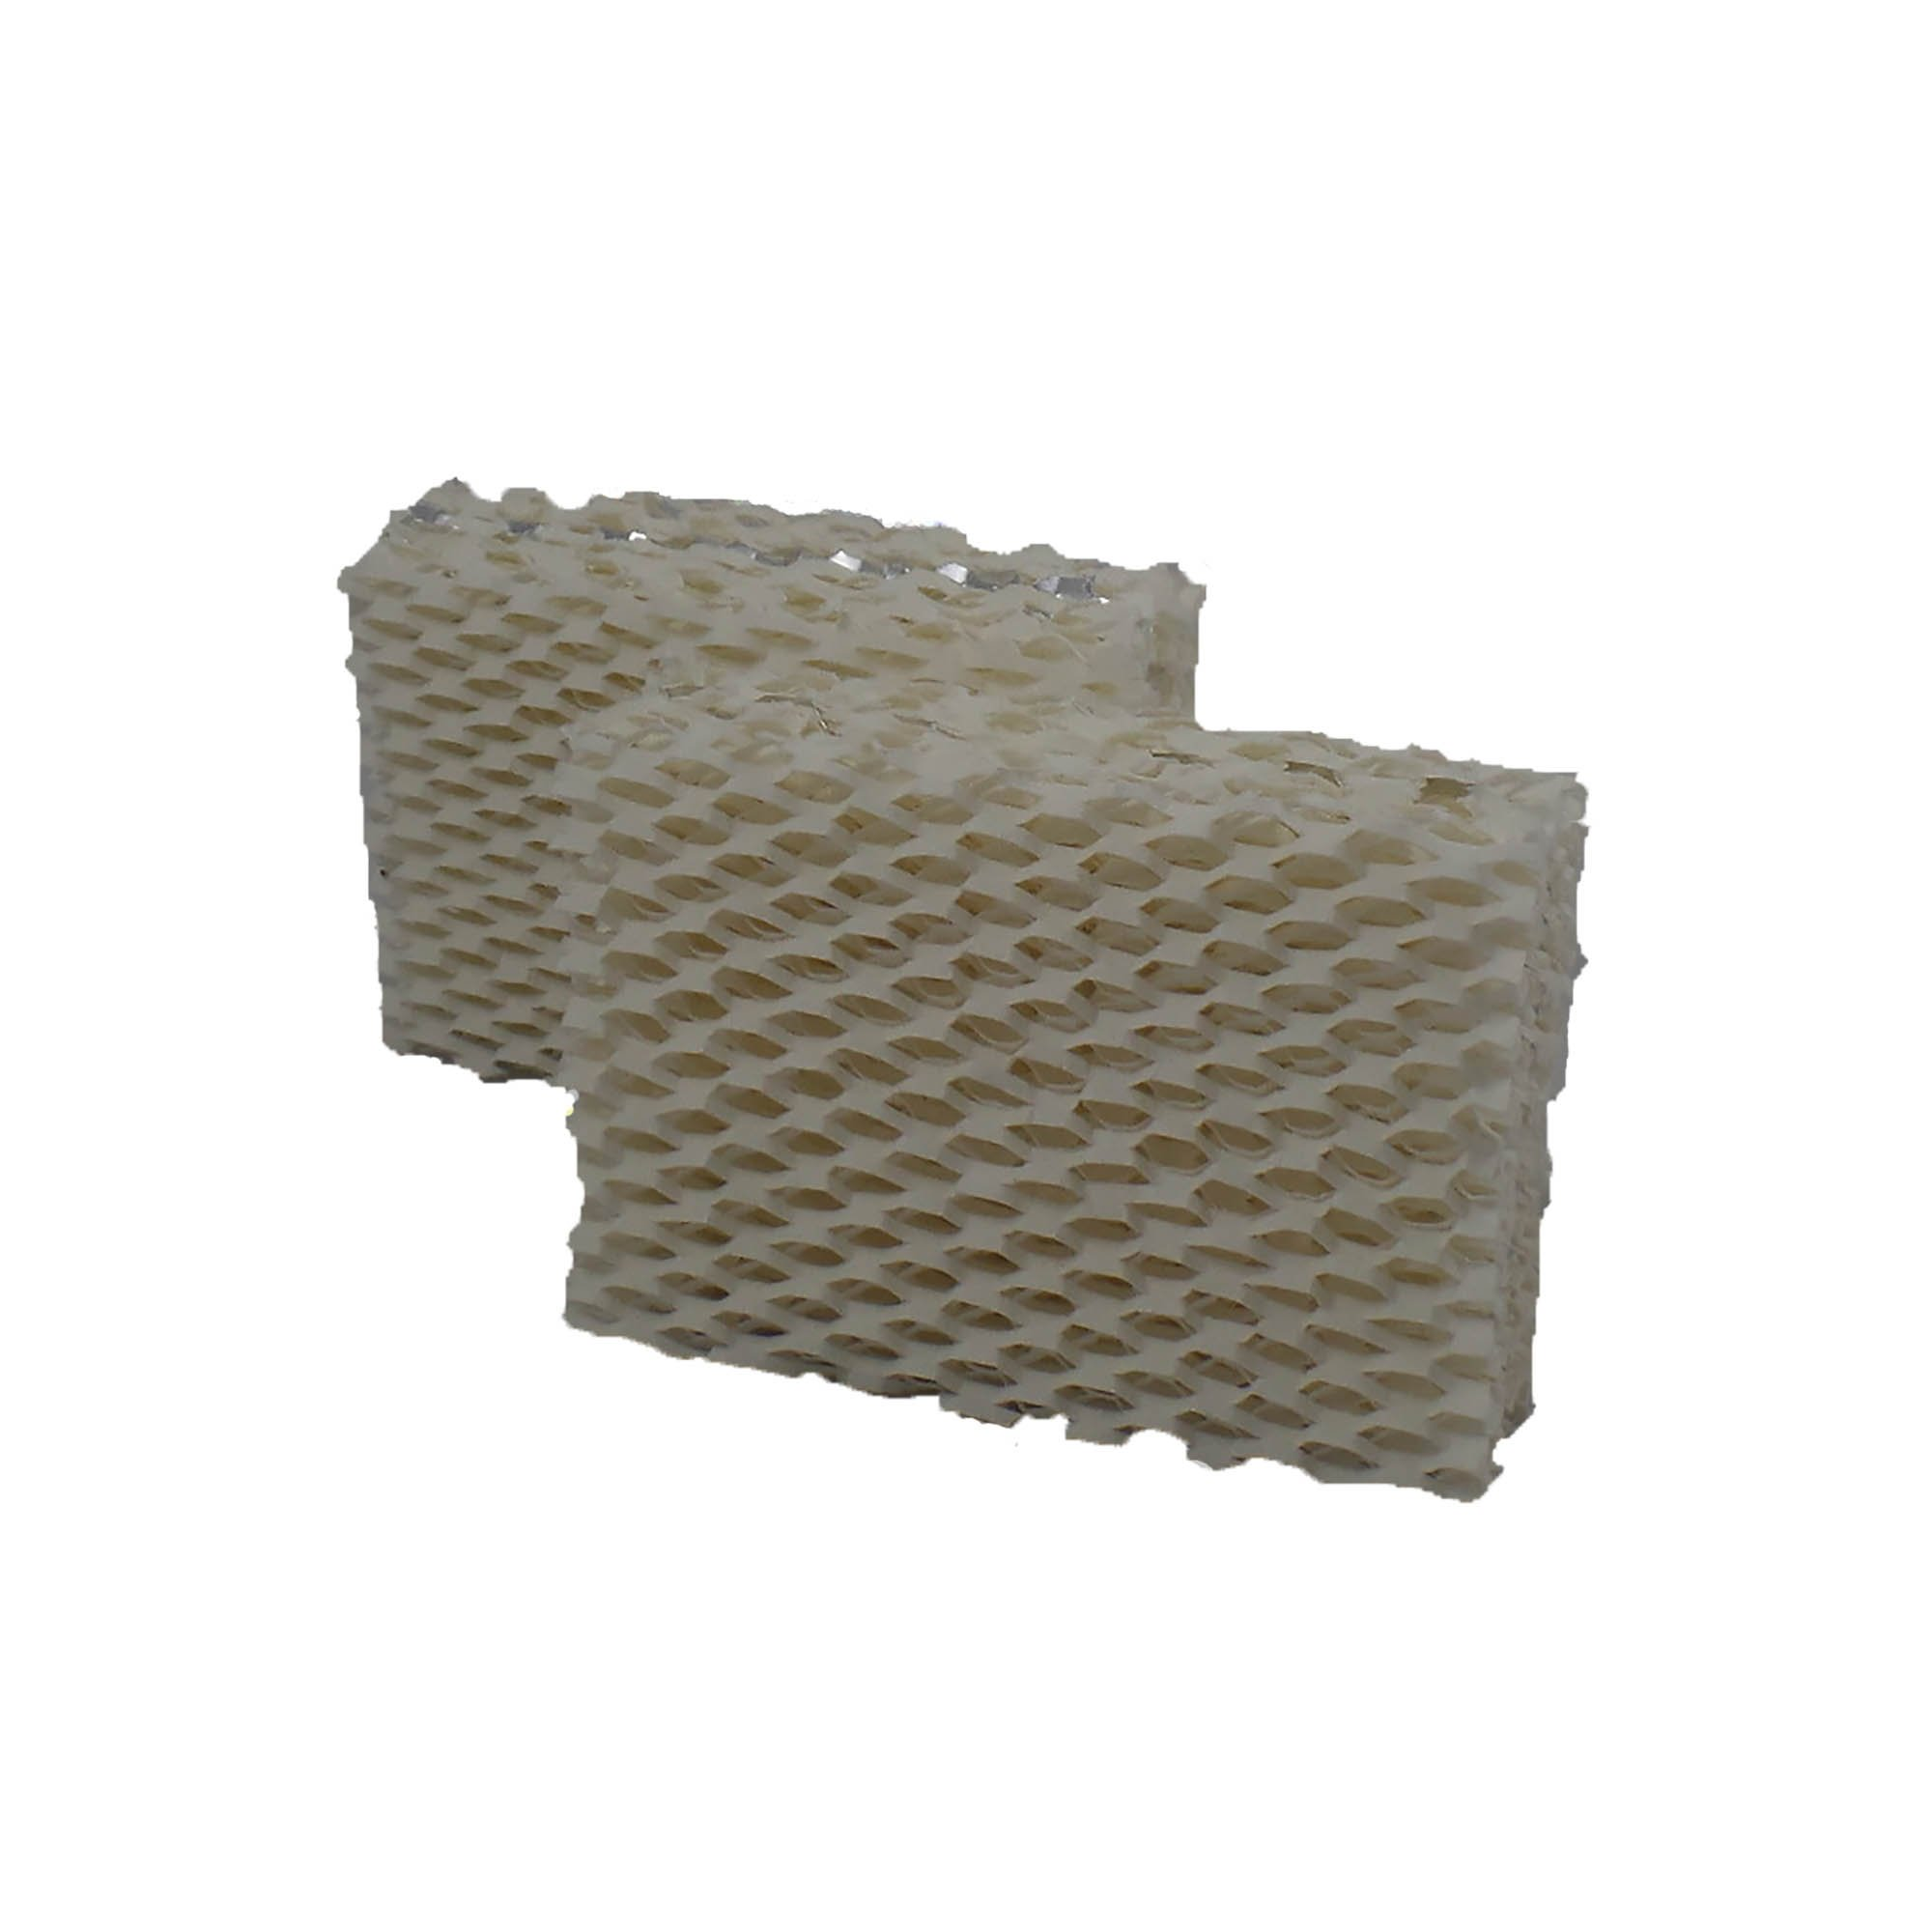 Air Filter Factory 2 PACK Compatible Replacement For Duracraft AC-813 Humidifier Filters